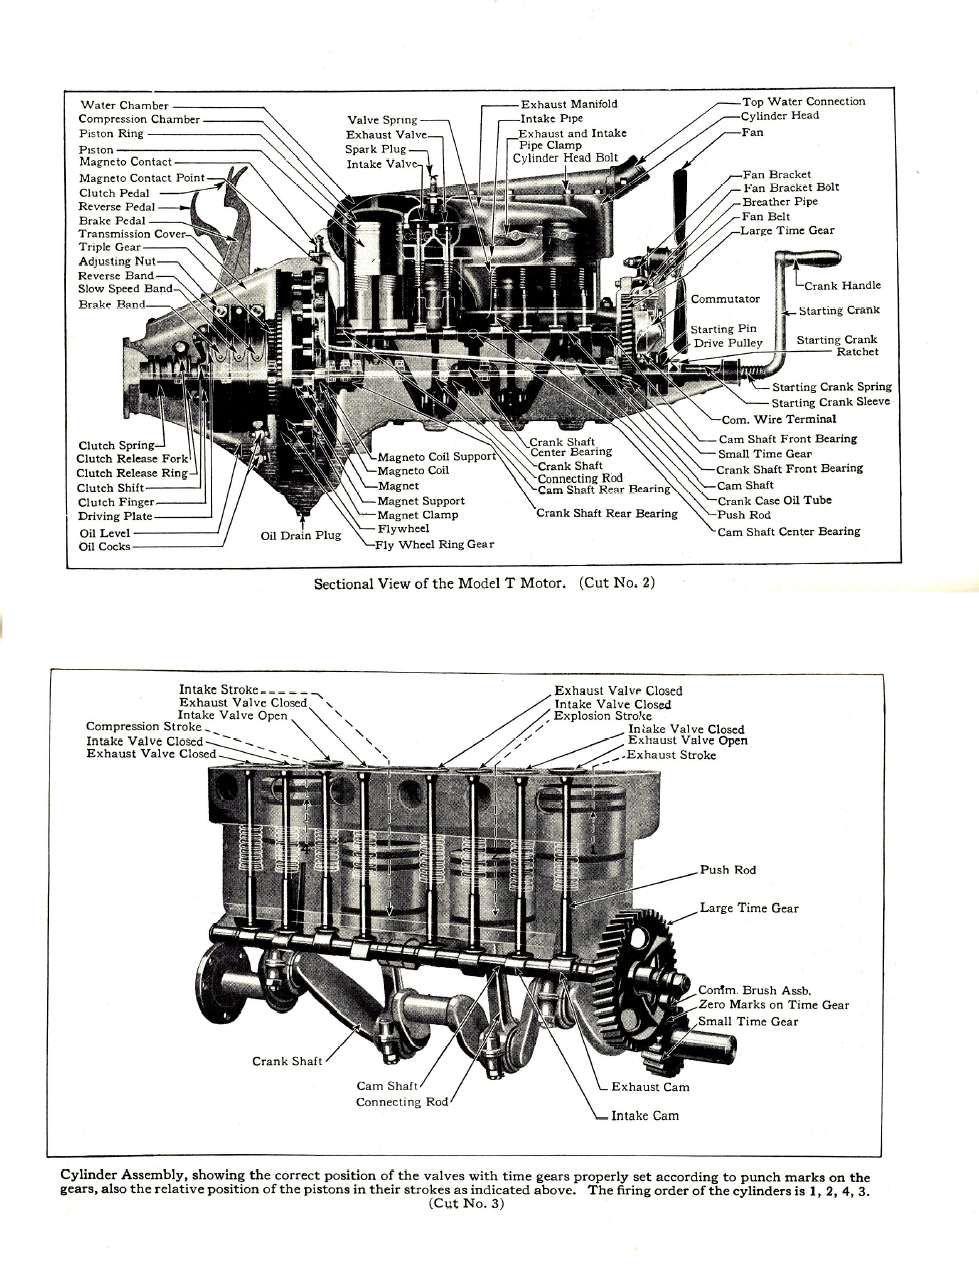 model t ford forum engine schematics for school project model t model t ford forum engine schematics for school project